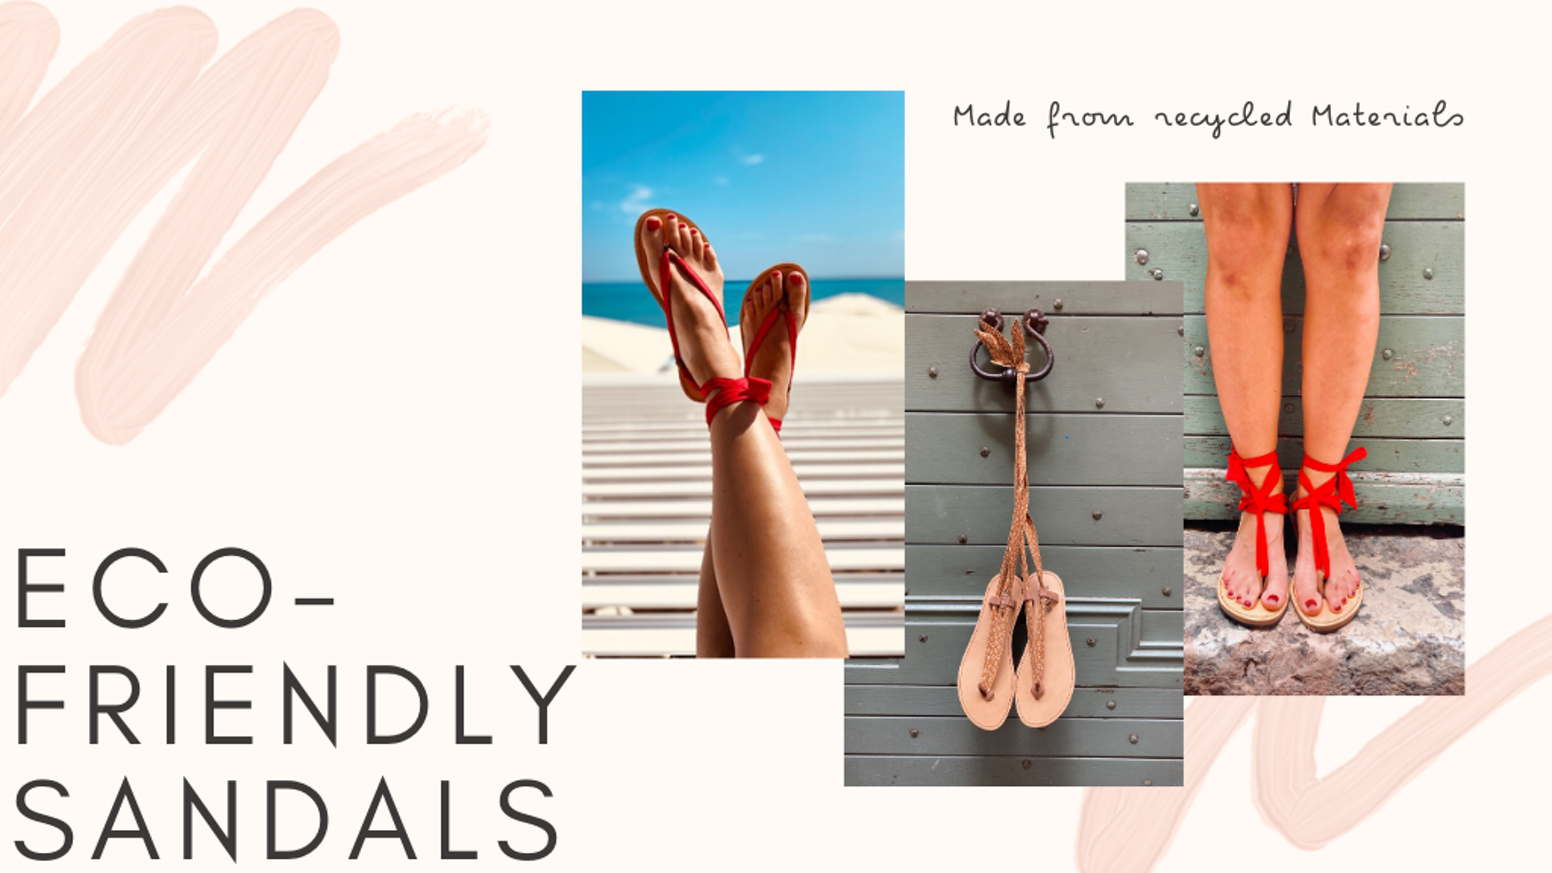 Eco-friendly, Versatile & Ethical sandals for Men & Women handcrafted in France & Spain from recycled materials. (Tire, leather & cork)